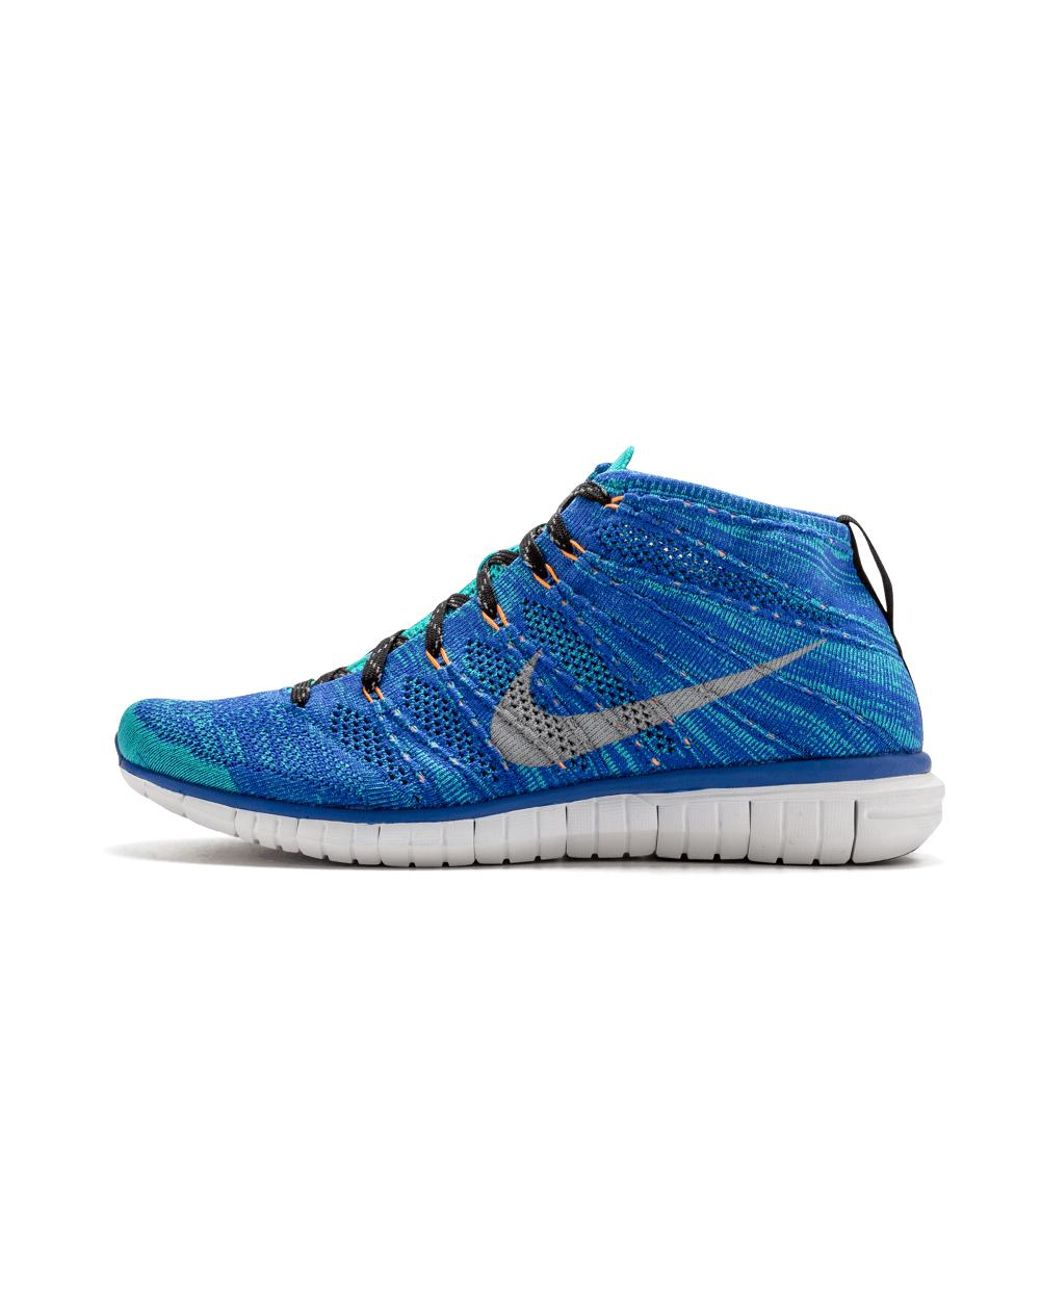 Nike Green Free Flyknit Chukka Running Shoes Size 14 for Men Lyst